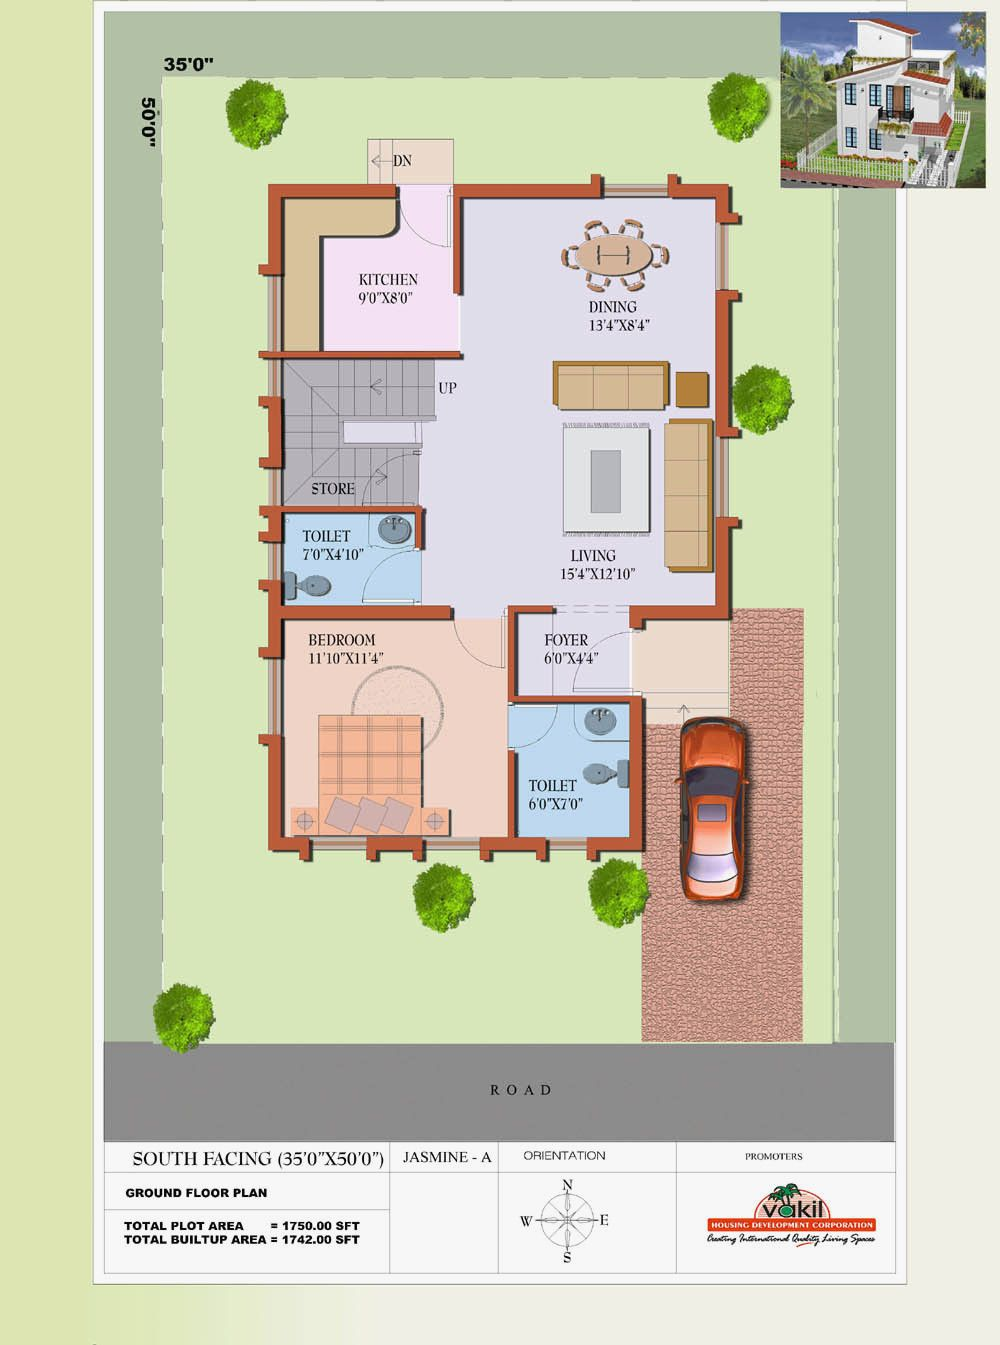 South Facing Home Plan Beautiful Vakil Hosur Hills Floor Plans 20x30 House Plans South Facing House West Facing House